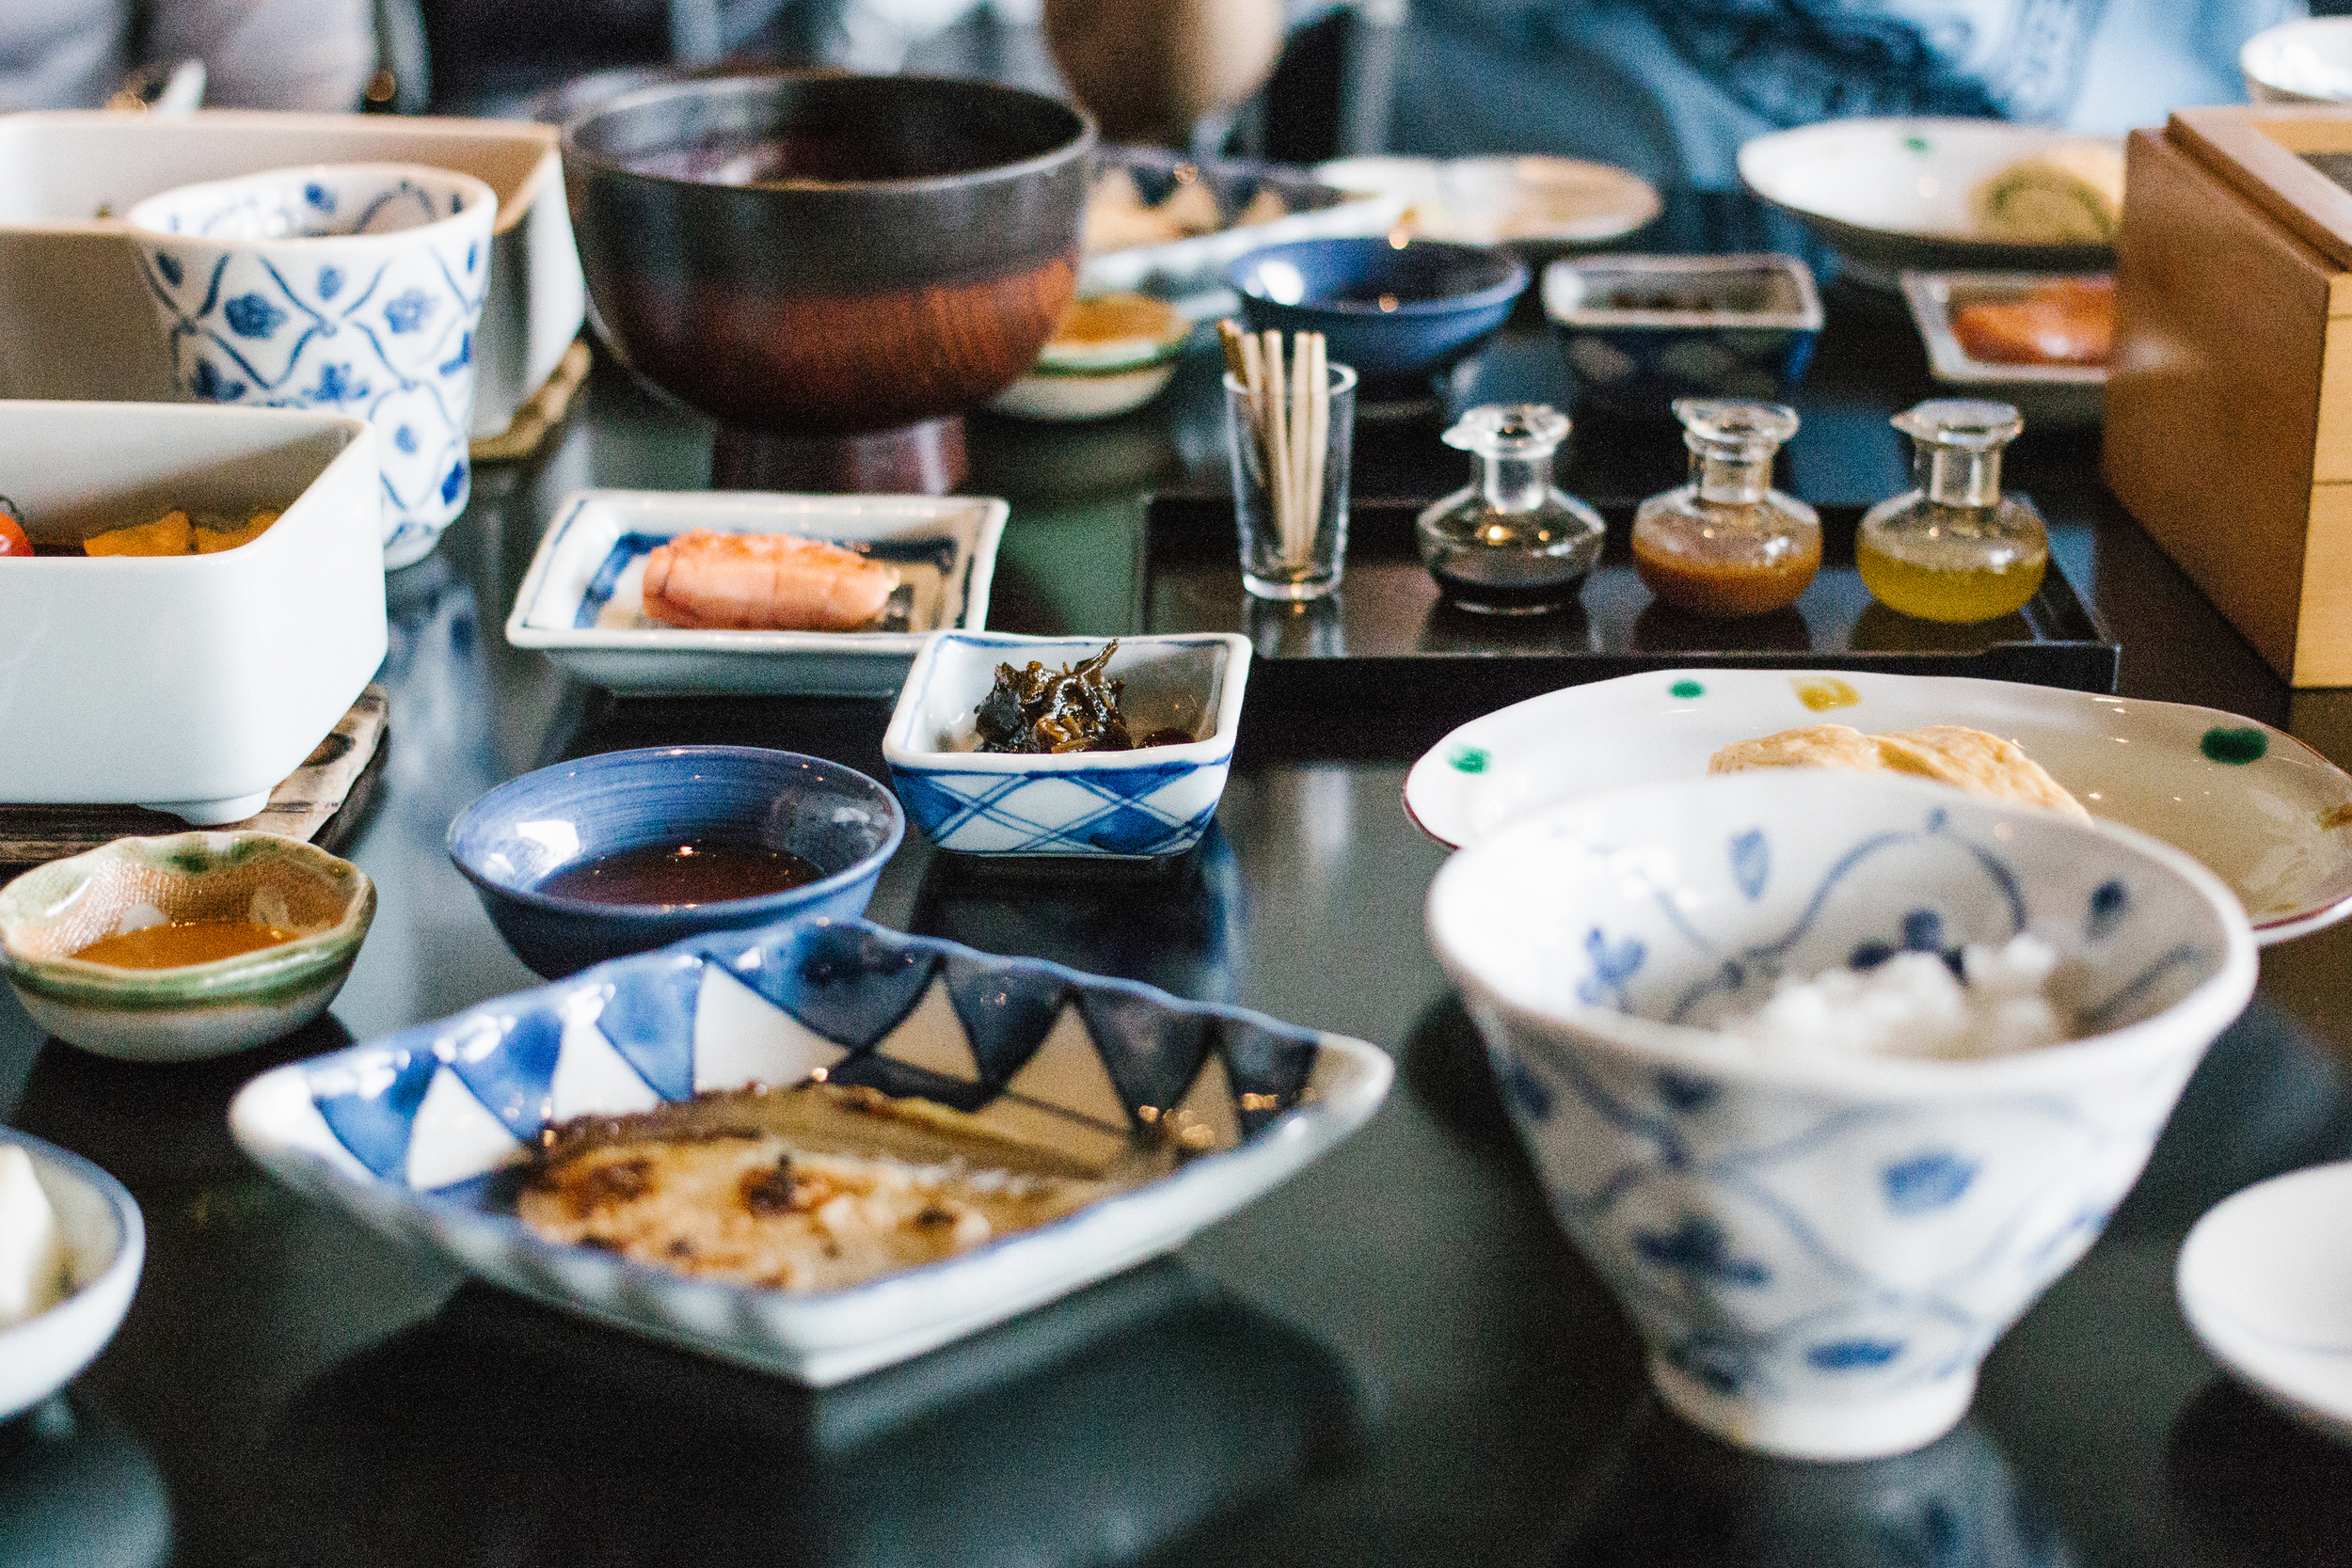 Japanese style breakfast in the Dining Room